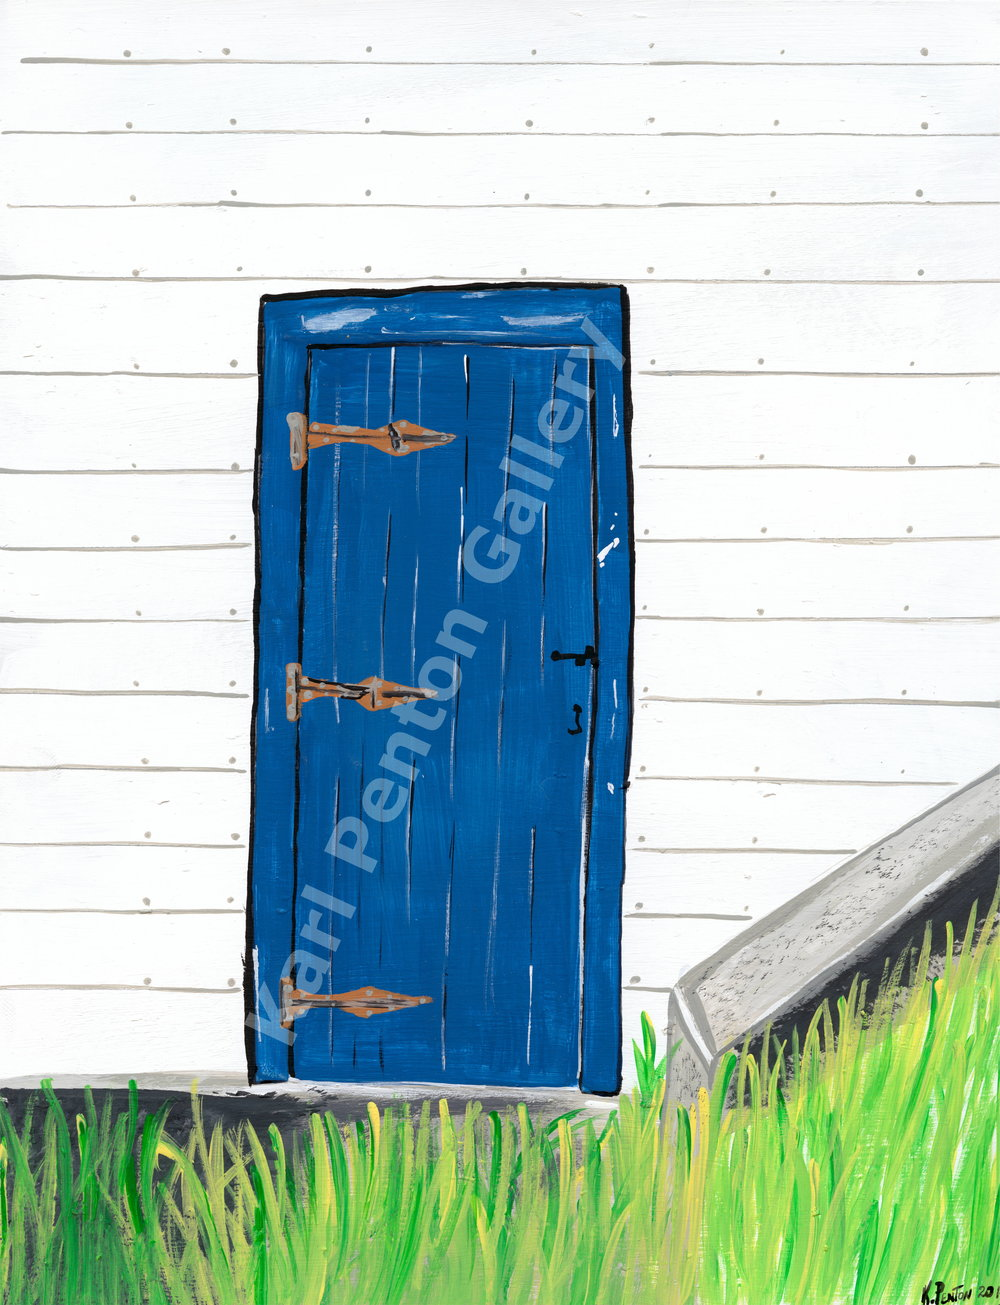 Blue Door - This door with the old fashioned latch and the long hinges is the type of door referred to as a